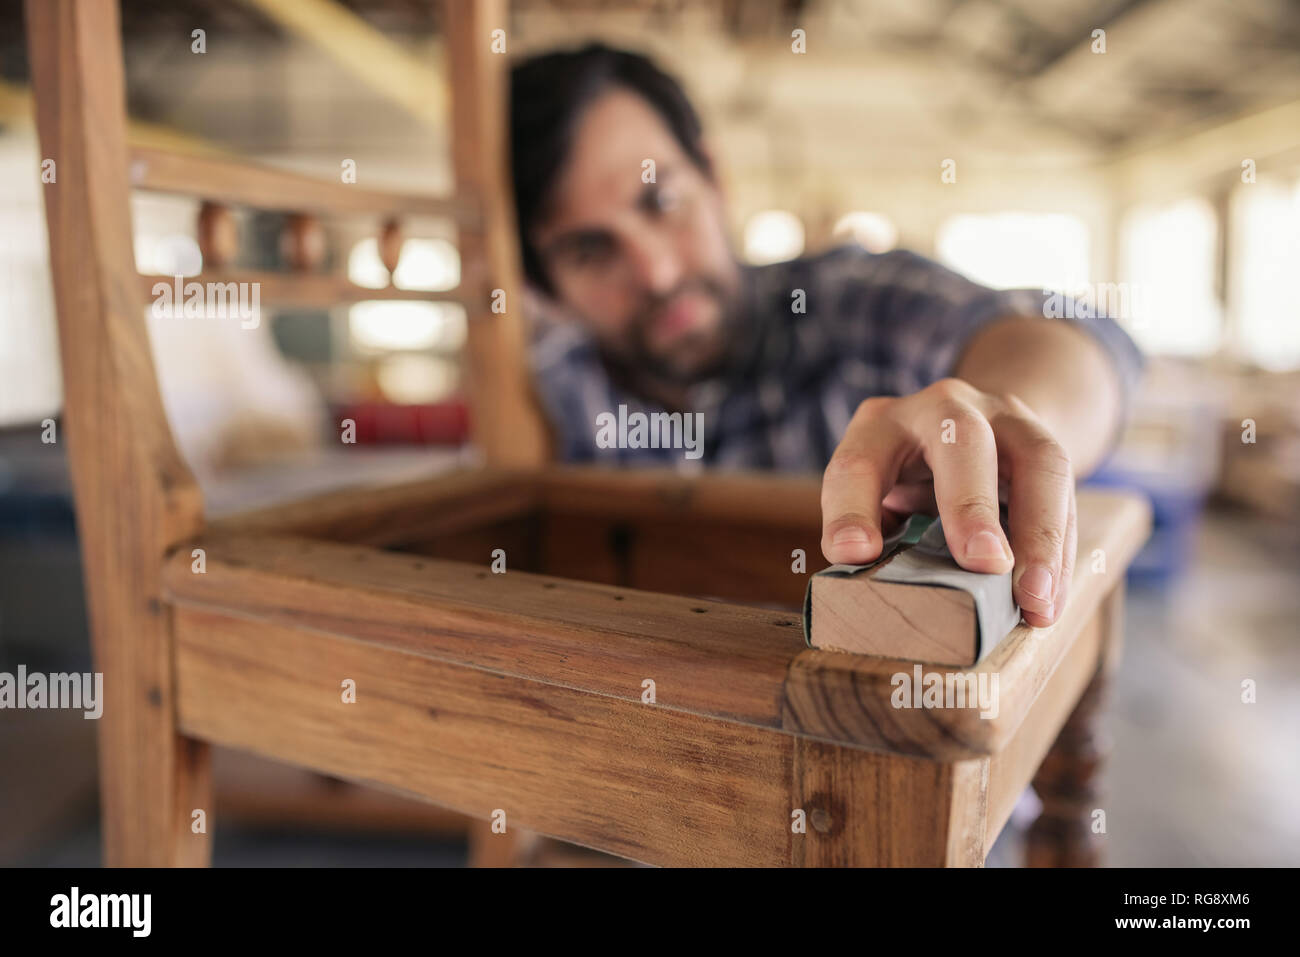 Skilled woodworker sanding a chair in his workshop - Stock Image